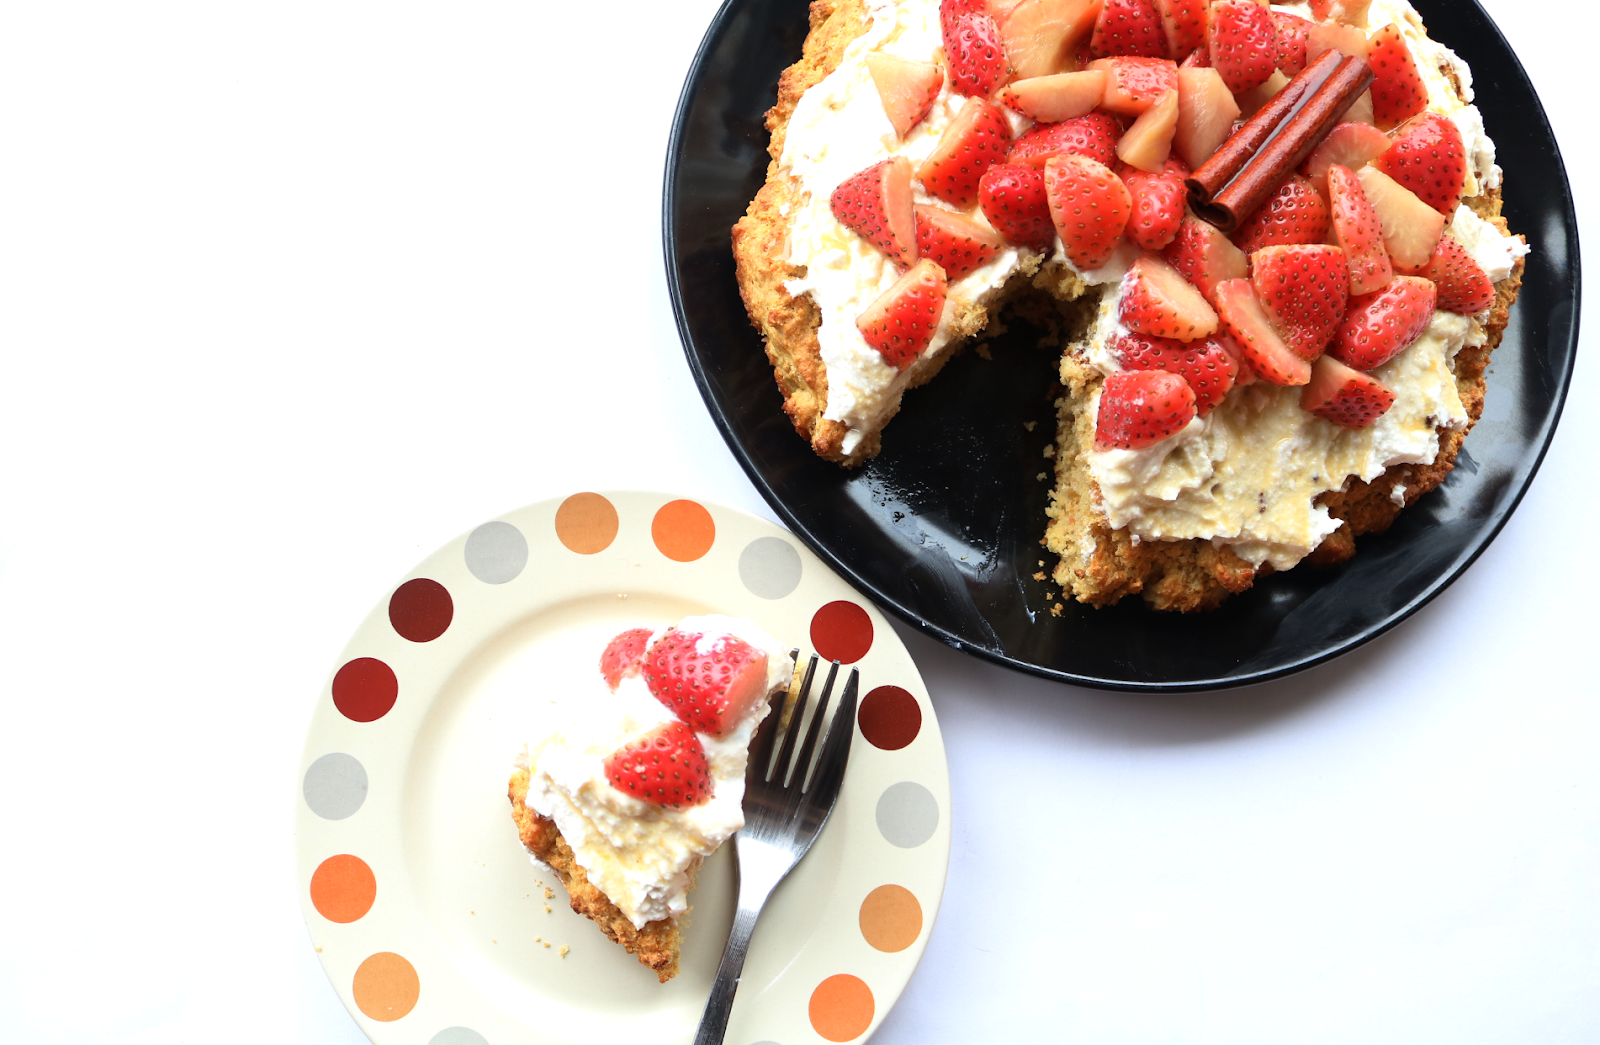 Strawberry Shortcake (Vegetarian recipe)